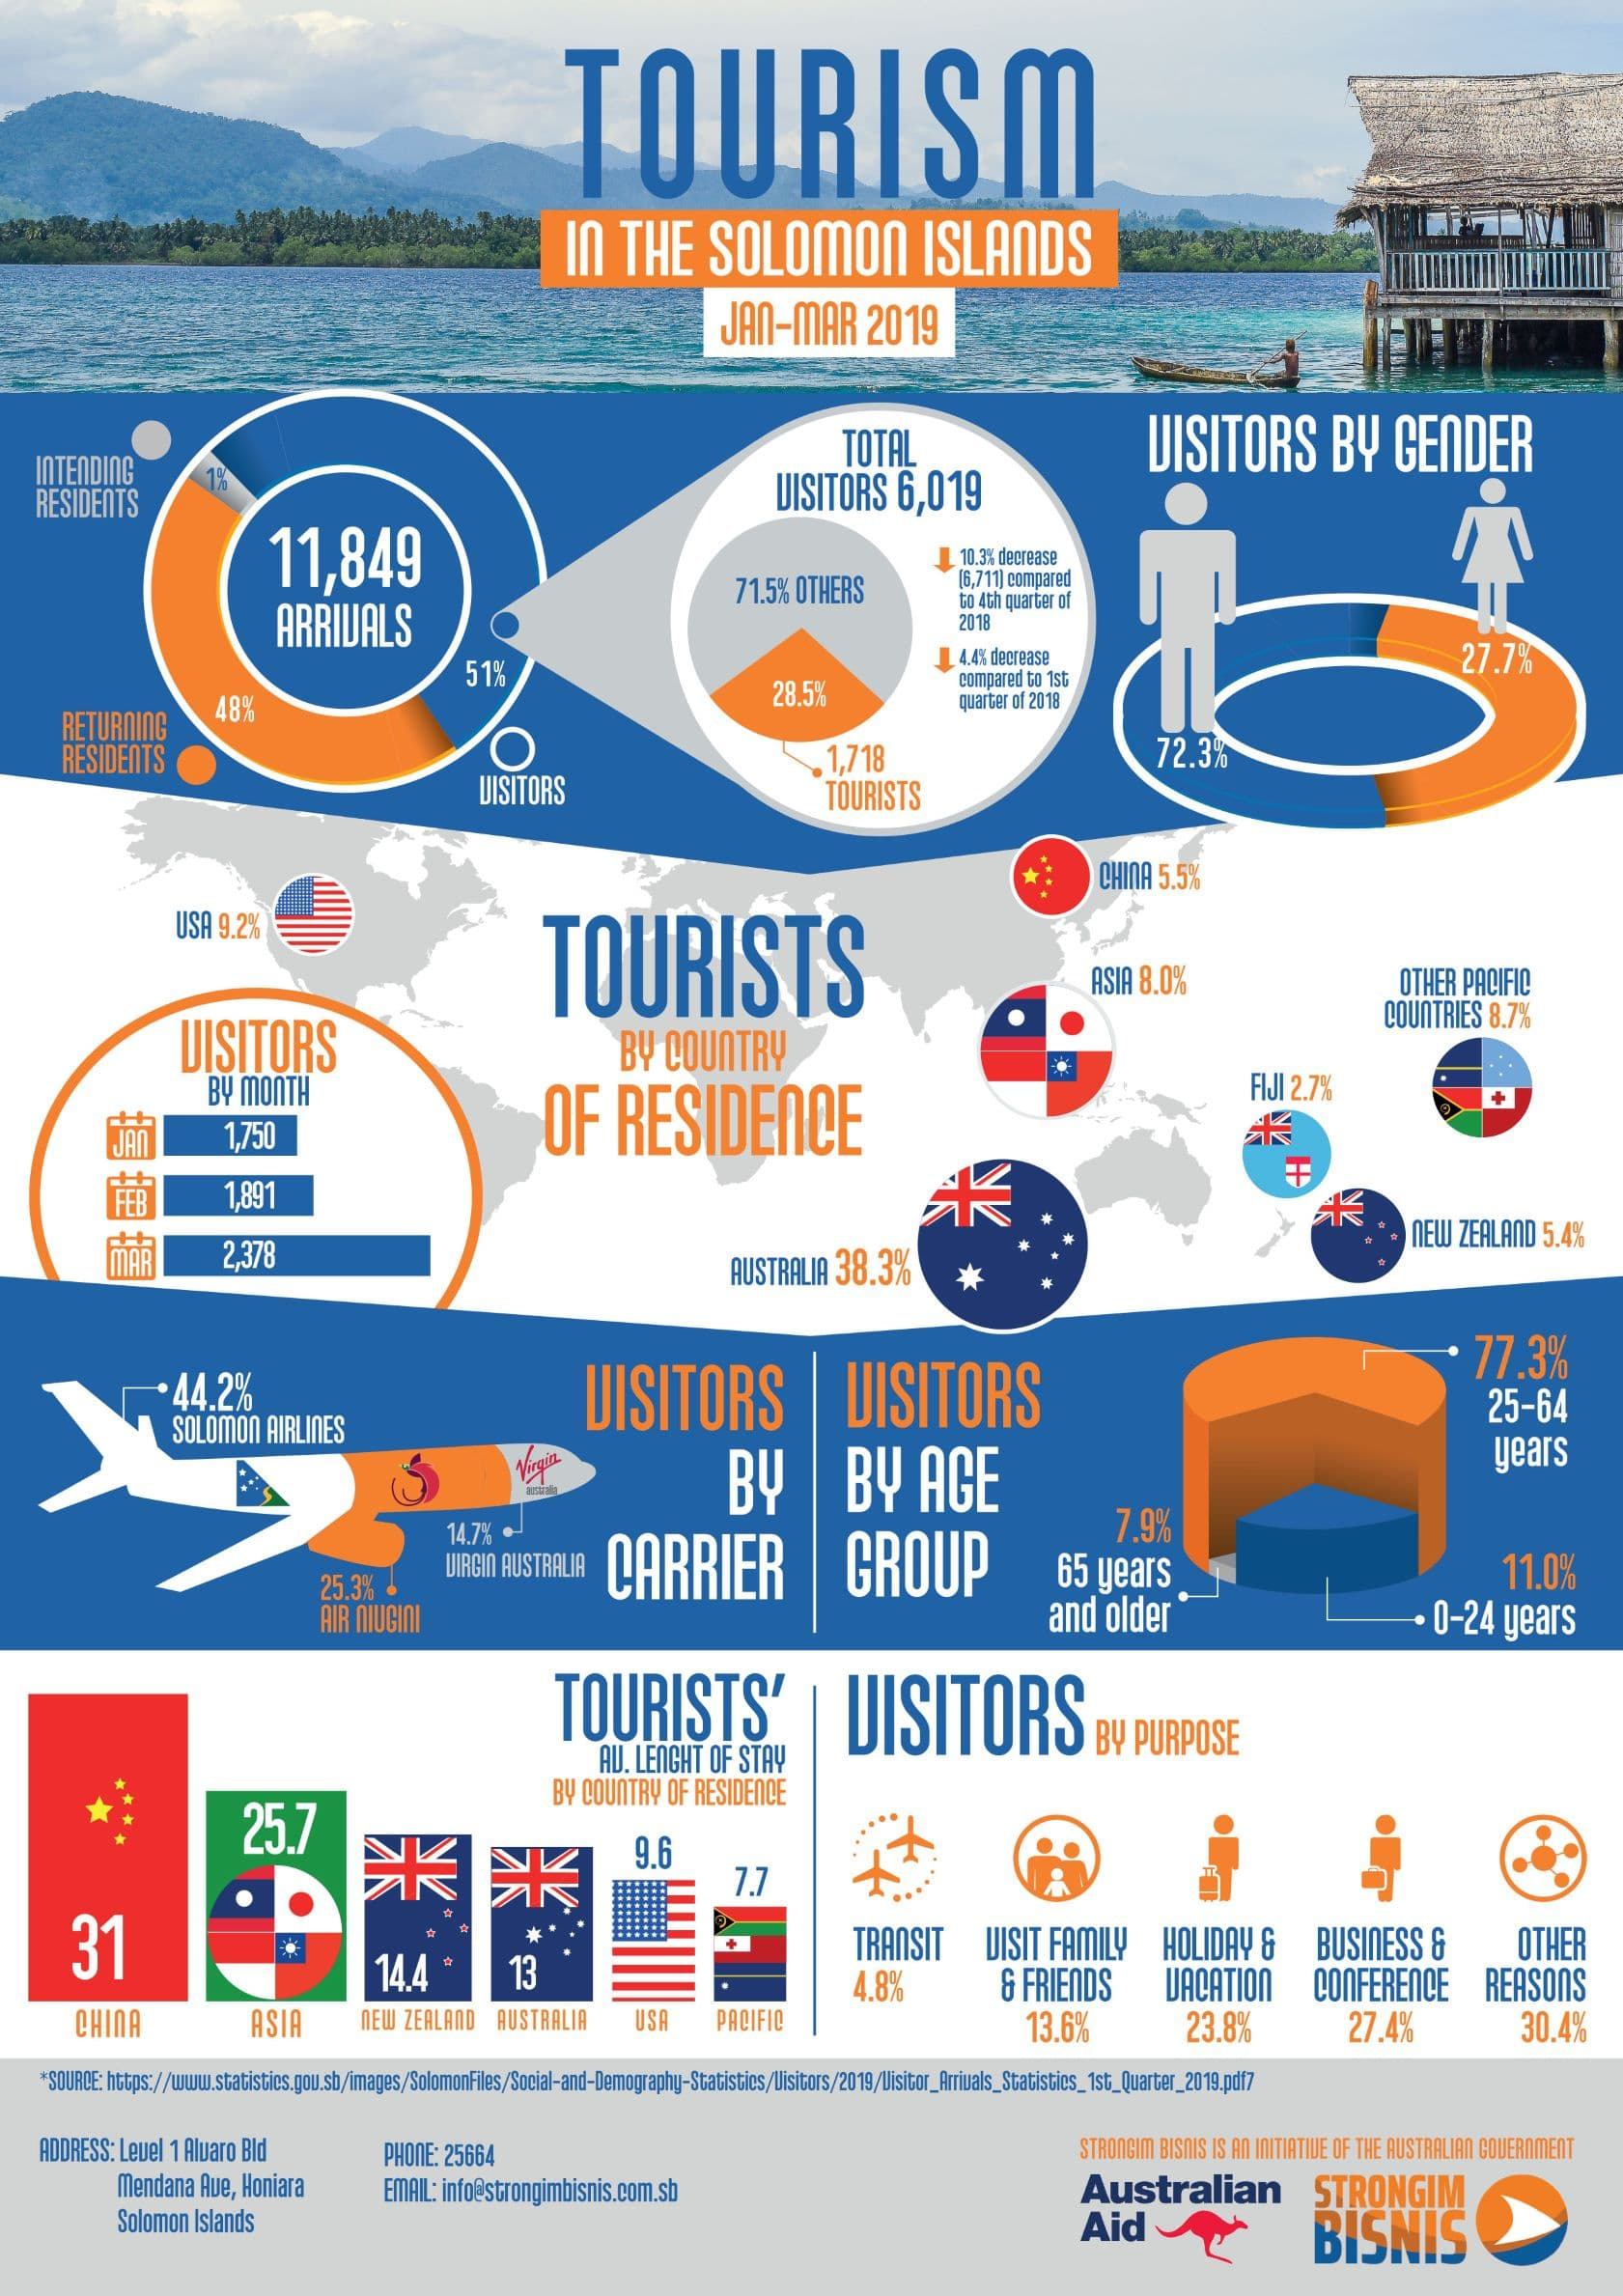 By the numbers: Solomon Islands Tourism - January to March 2019